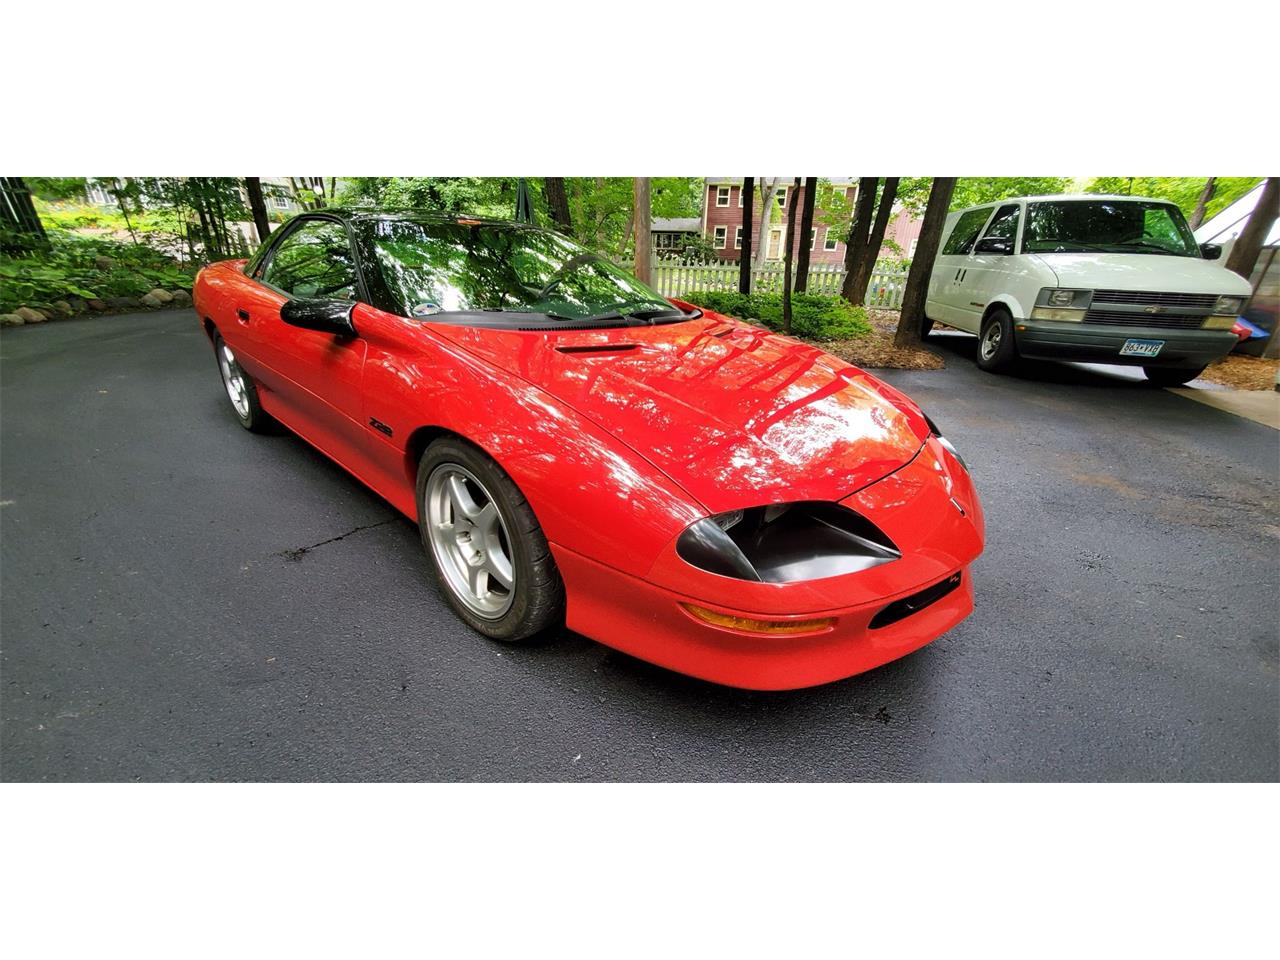 1994 Chevrolet Camaro Z28 (CC-1242753) for sale in Annandale, Minnesota